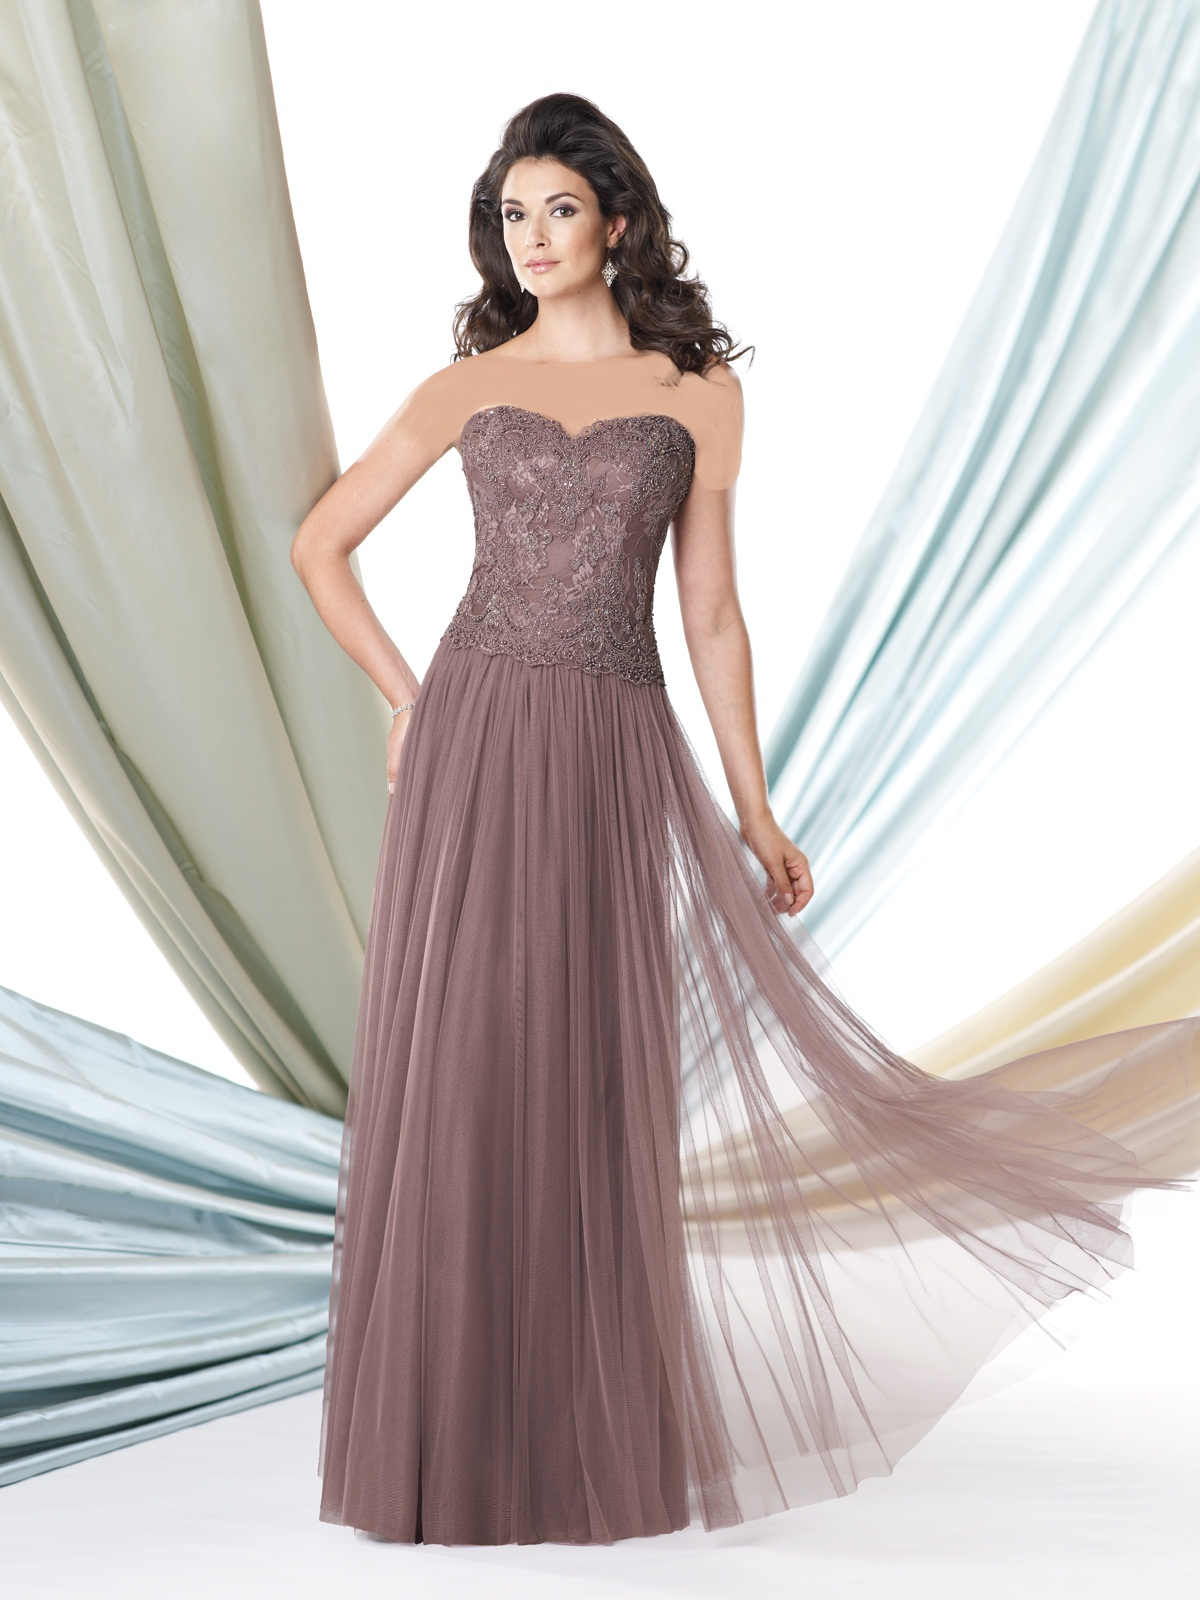 http://www.uplooder.net/img/image/74/2c2f6f3596bfeee04676e95eecb23d42/114912_016_Hero_mother_of_the_bride_dresses_2014.jpg